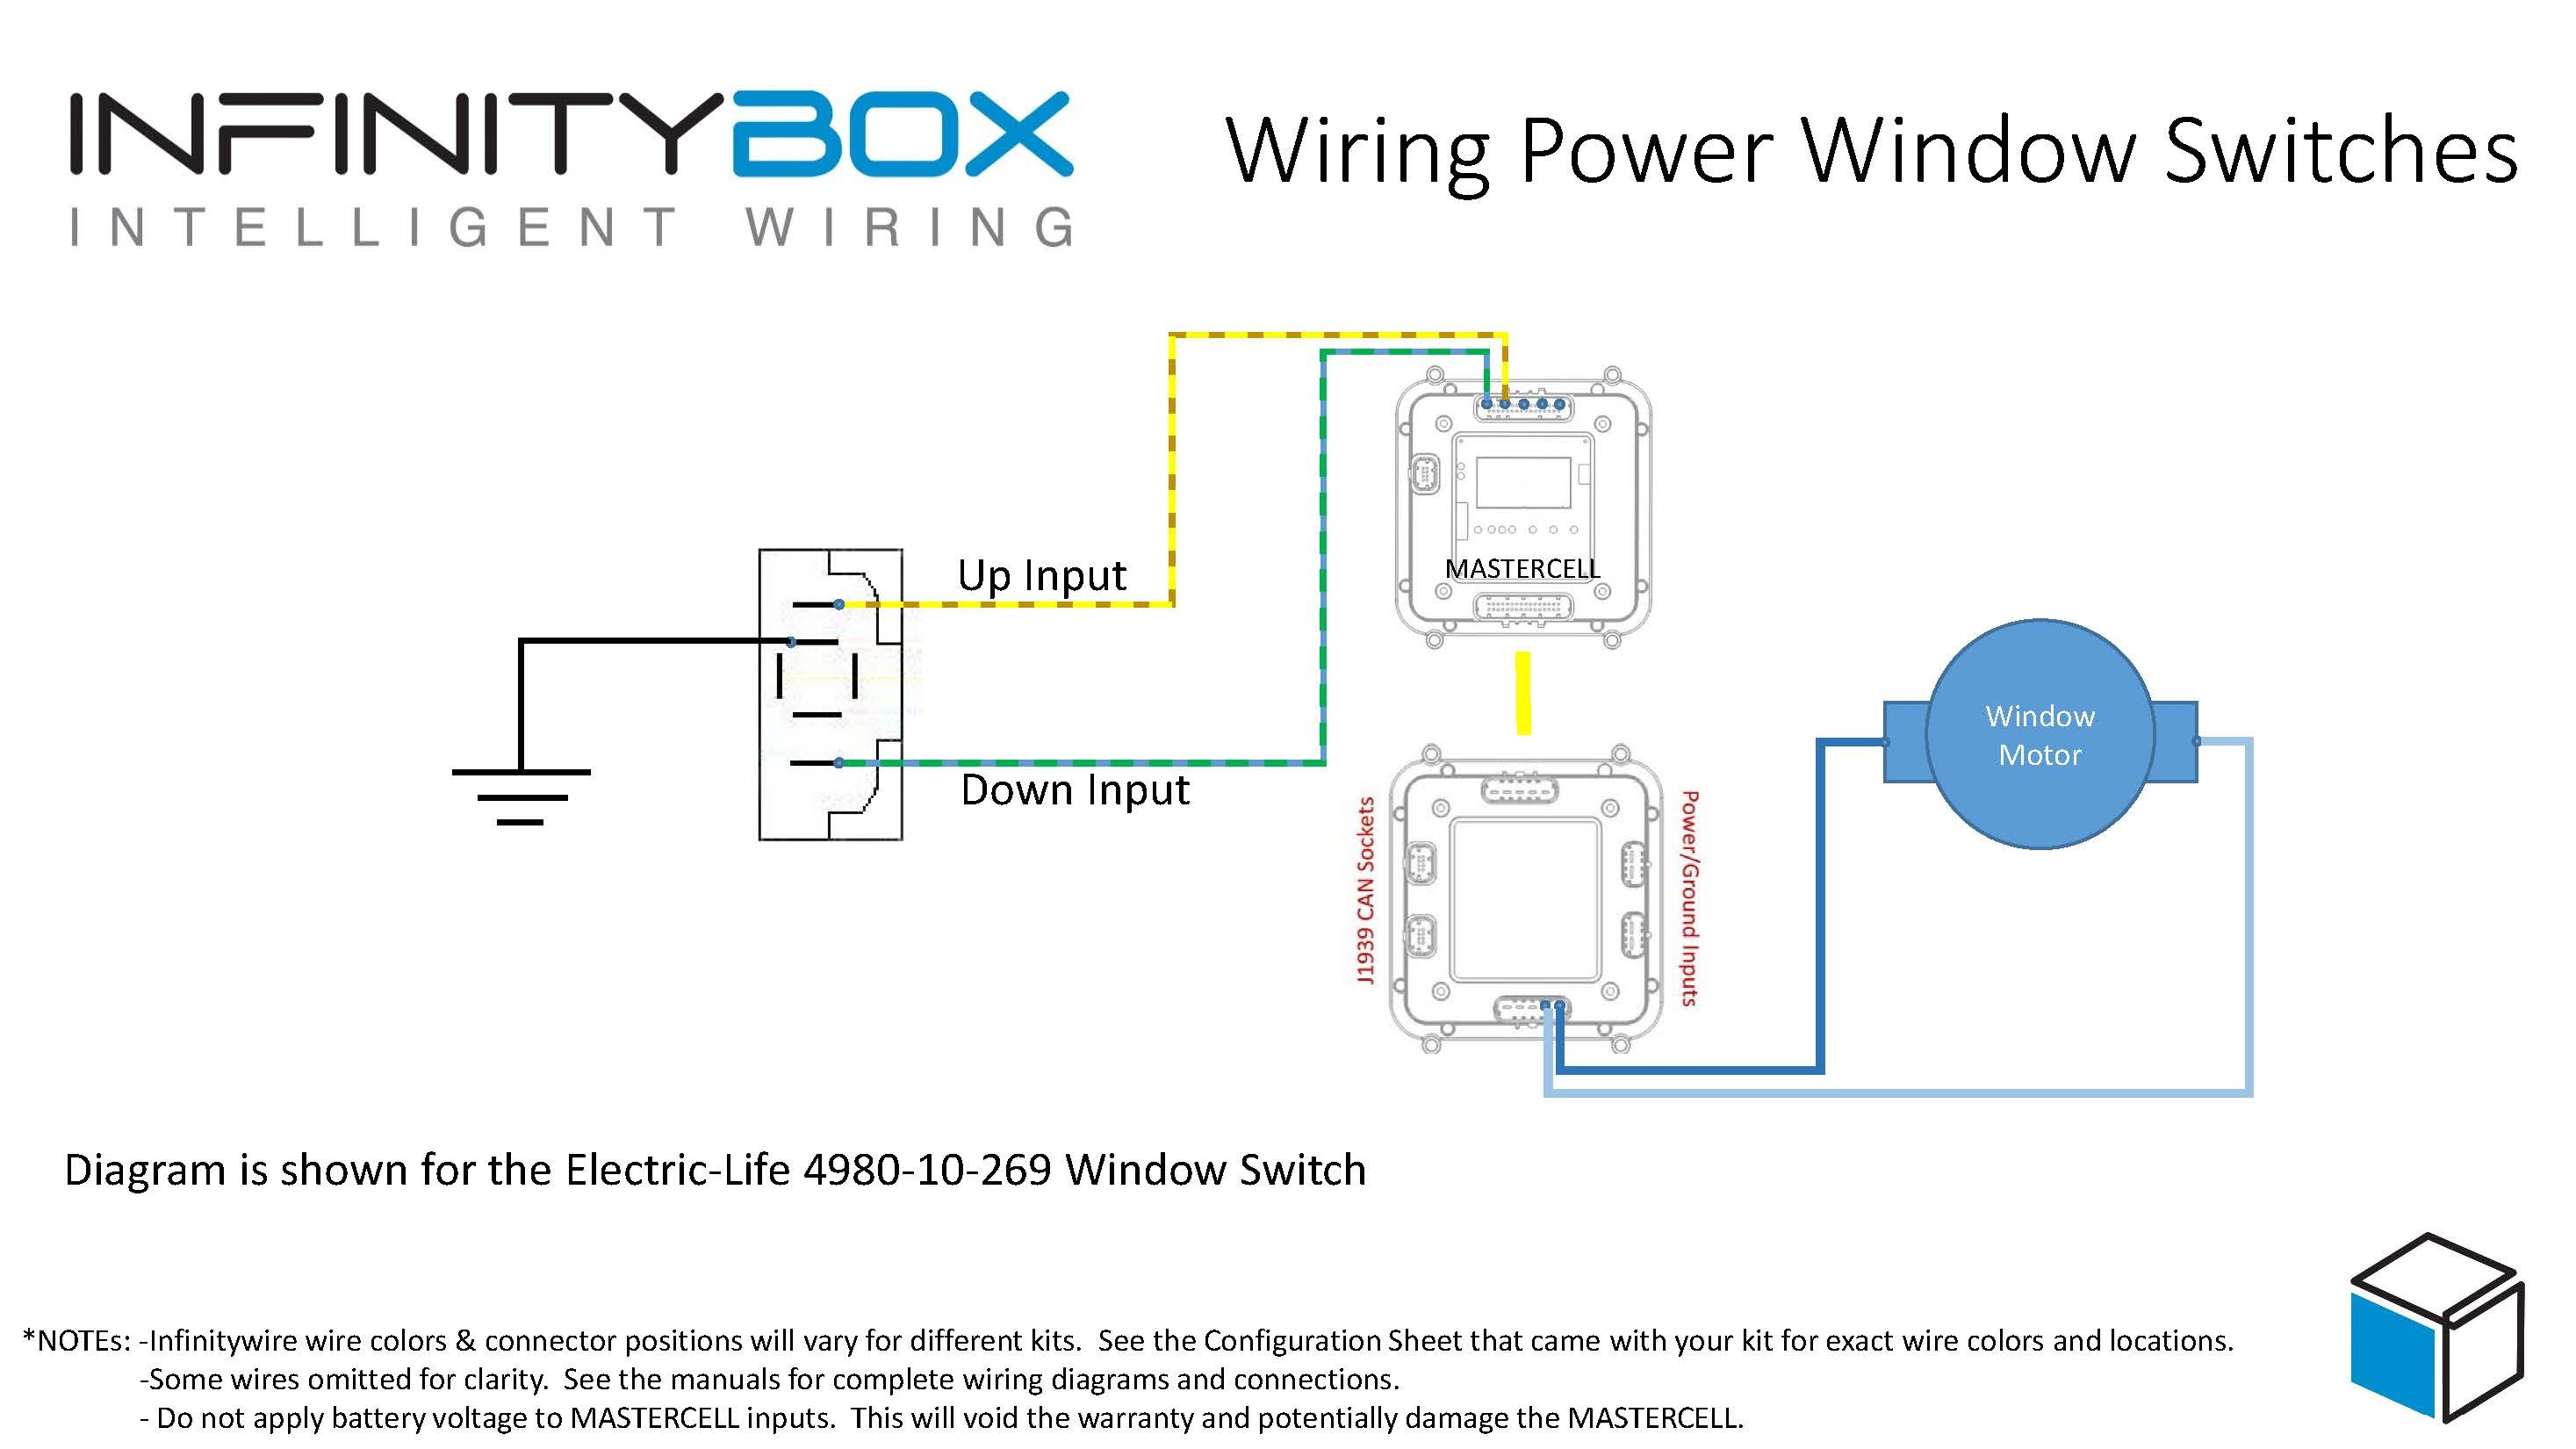 Power Window Switch Diagram Amazing Vehicle Wiring Information Everything You Need to Of Power Window Switch Diagram